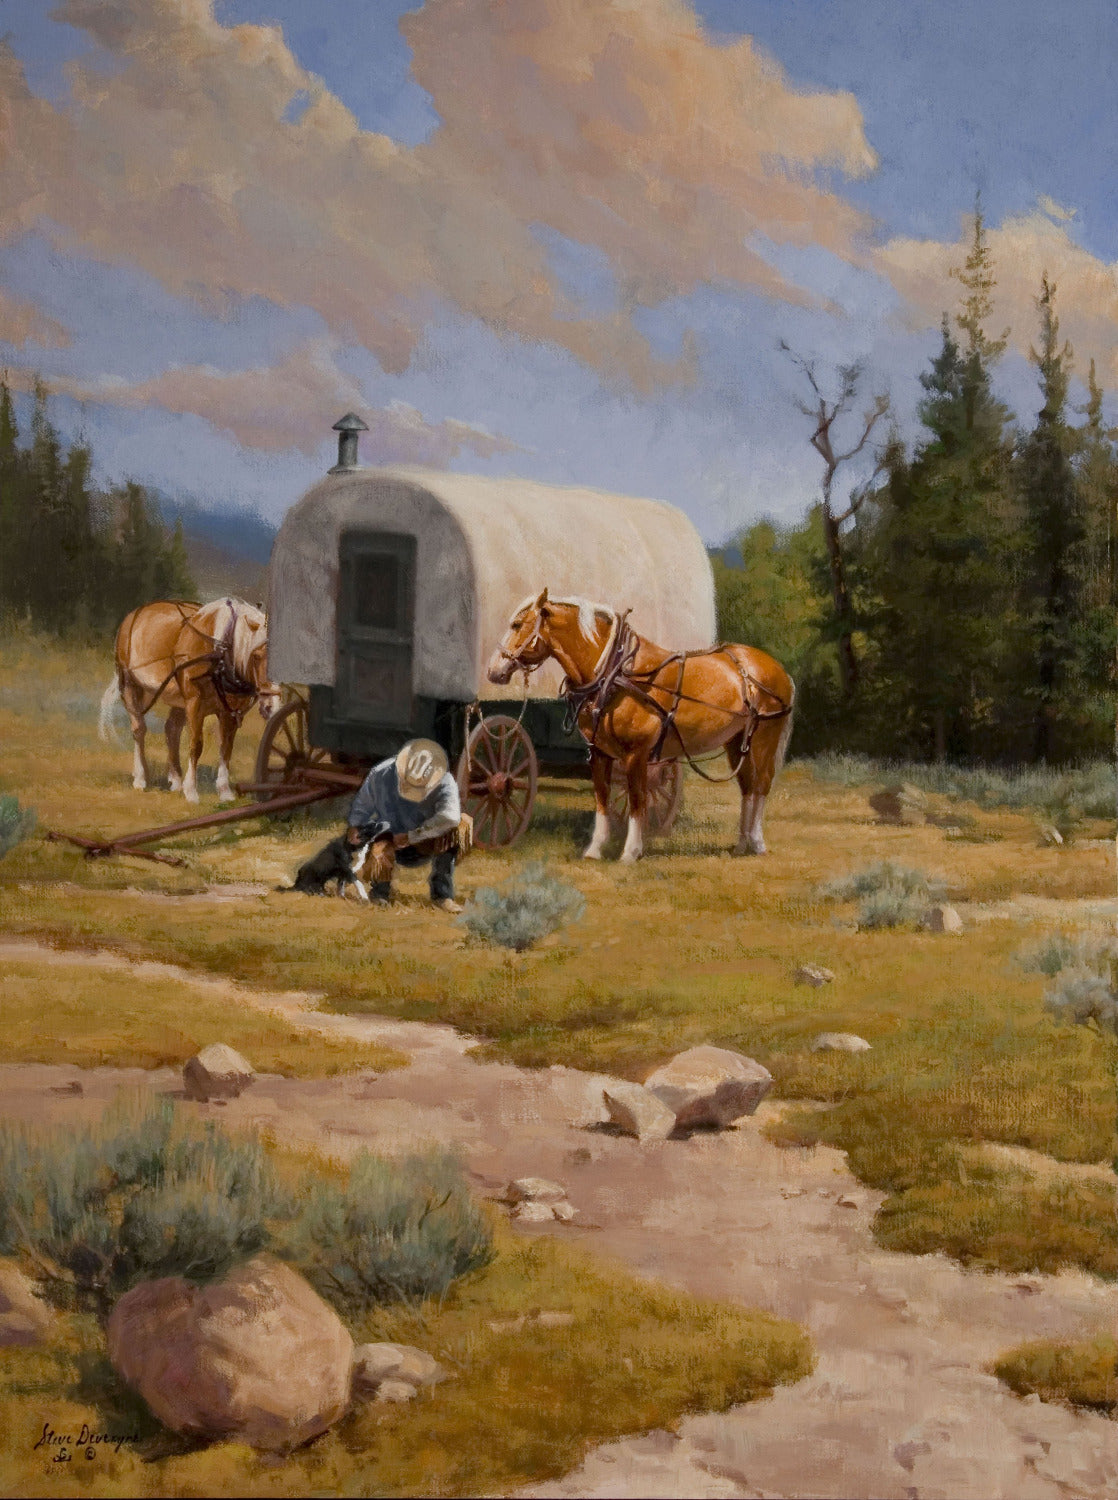 "The Cowboy and the Sheep Wagon helped to shape the American West. ""Home Away from Home"" by Steve Devenyns is a 24 x 18 Oil Painting on Linen that depicts this moment. The famous Western and Cowboy Artist Steve Devenyns from Cody, Wyoming, the heart of the American West and Cowboy Life."